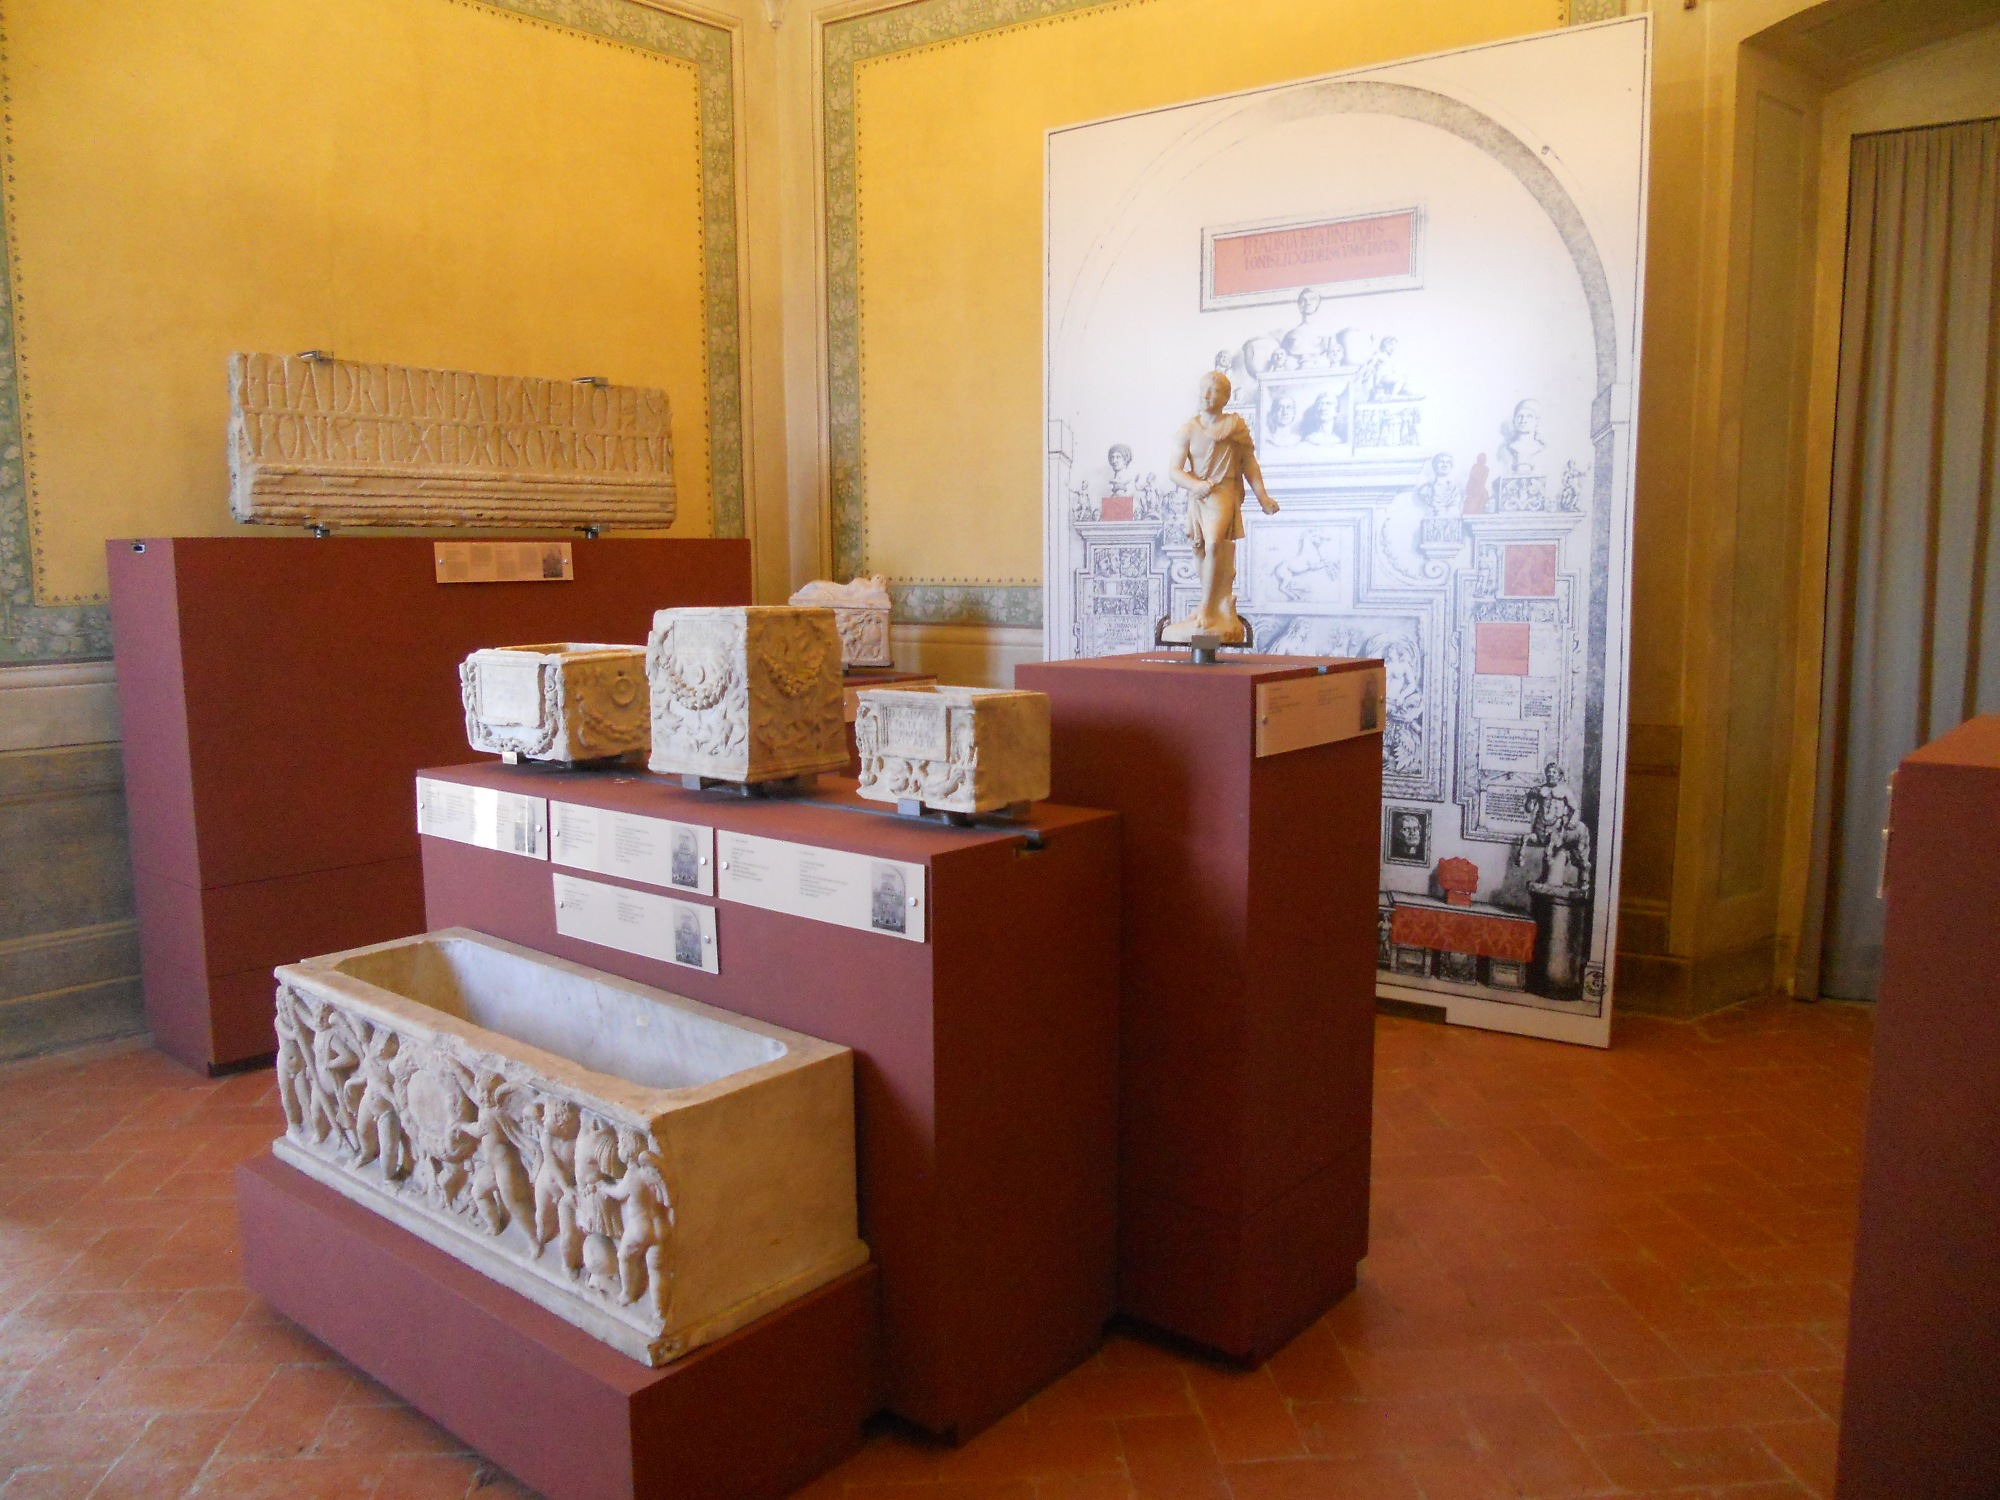 http://www.polomuseale.firenze.it/areastampa/files/53aaa171296445ac02000029/Antiquarium%20di%20Villa%20Corsini.jpg